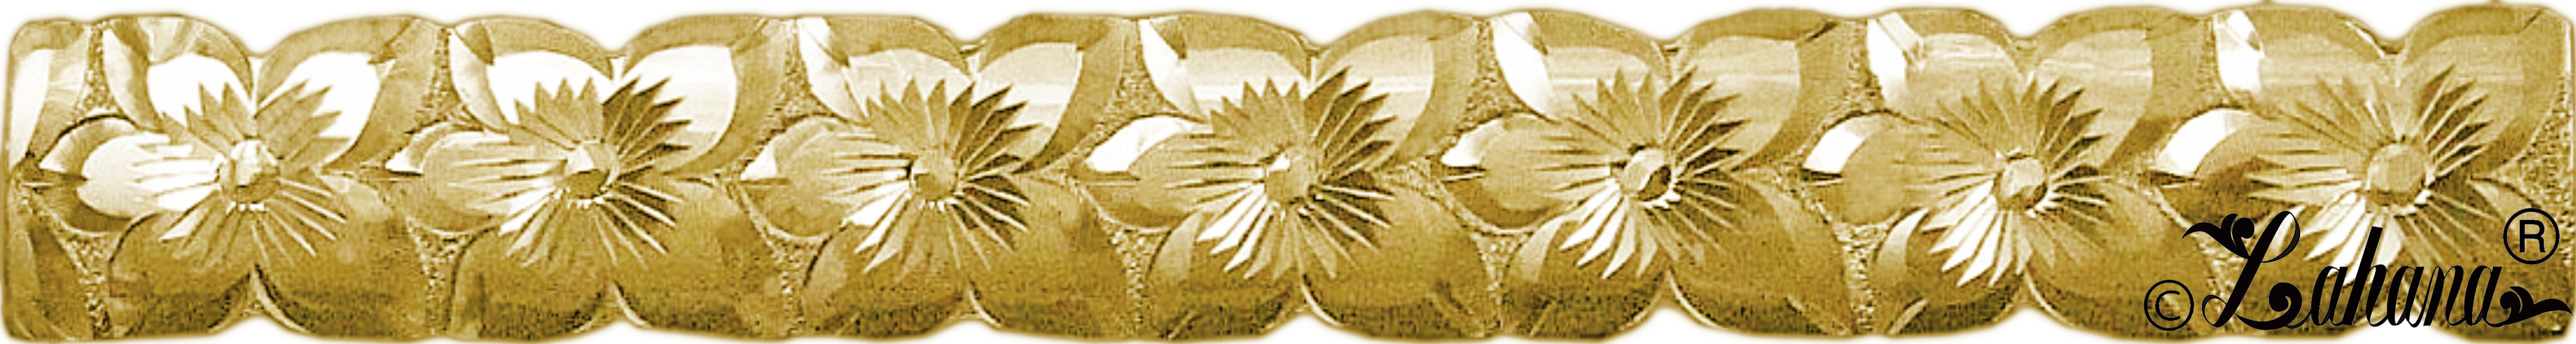 14k-sample-logo-ad-i.jpg